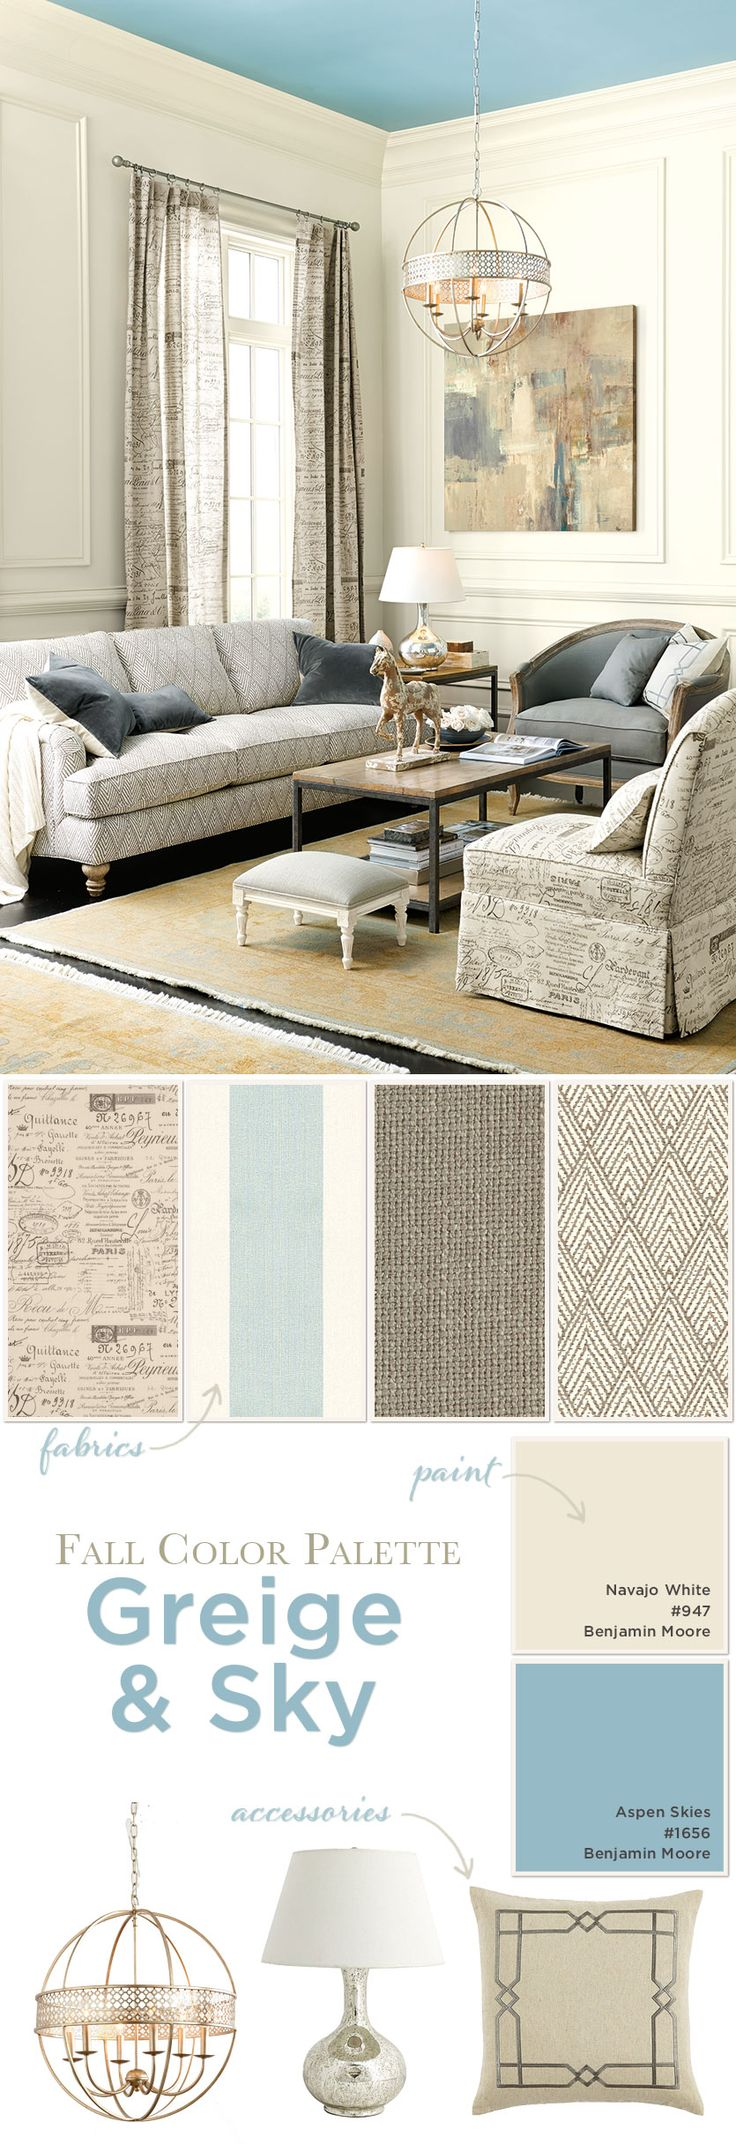 Living room color palette with gray, taupe, and blue:  I like these colors for my sewing room!